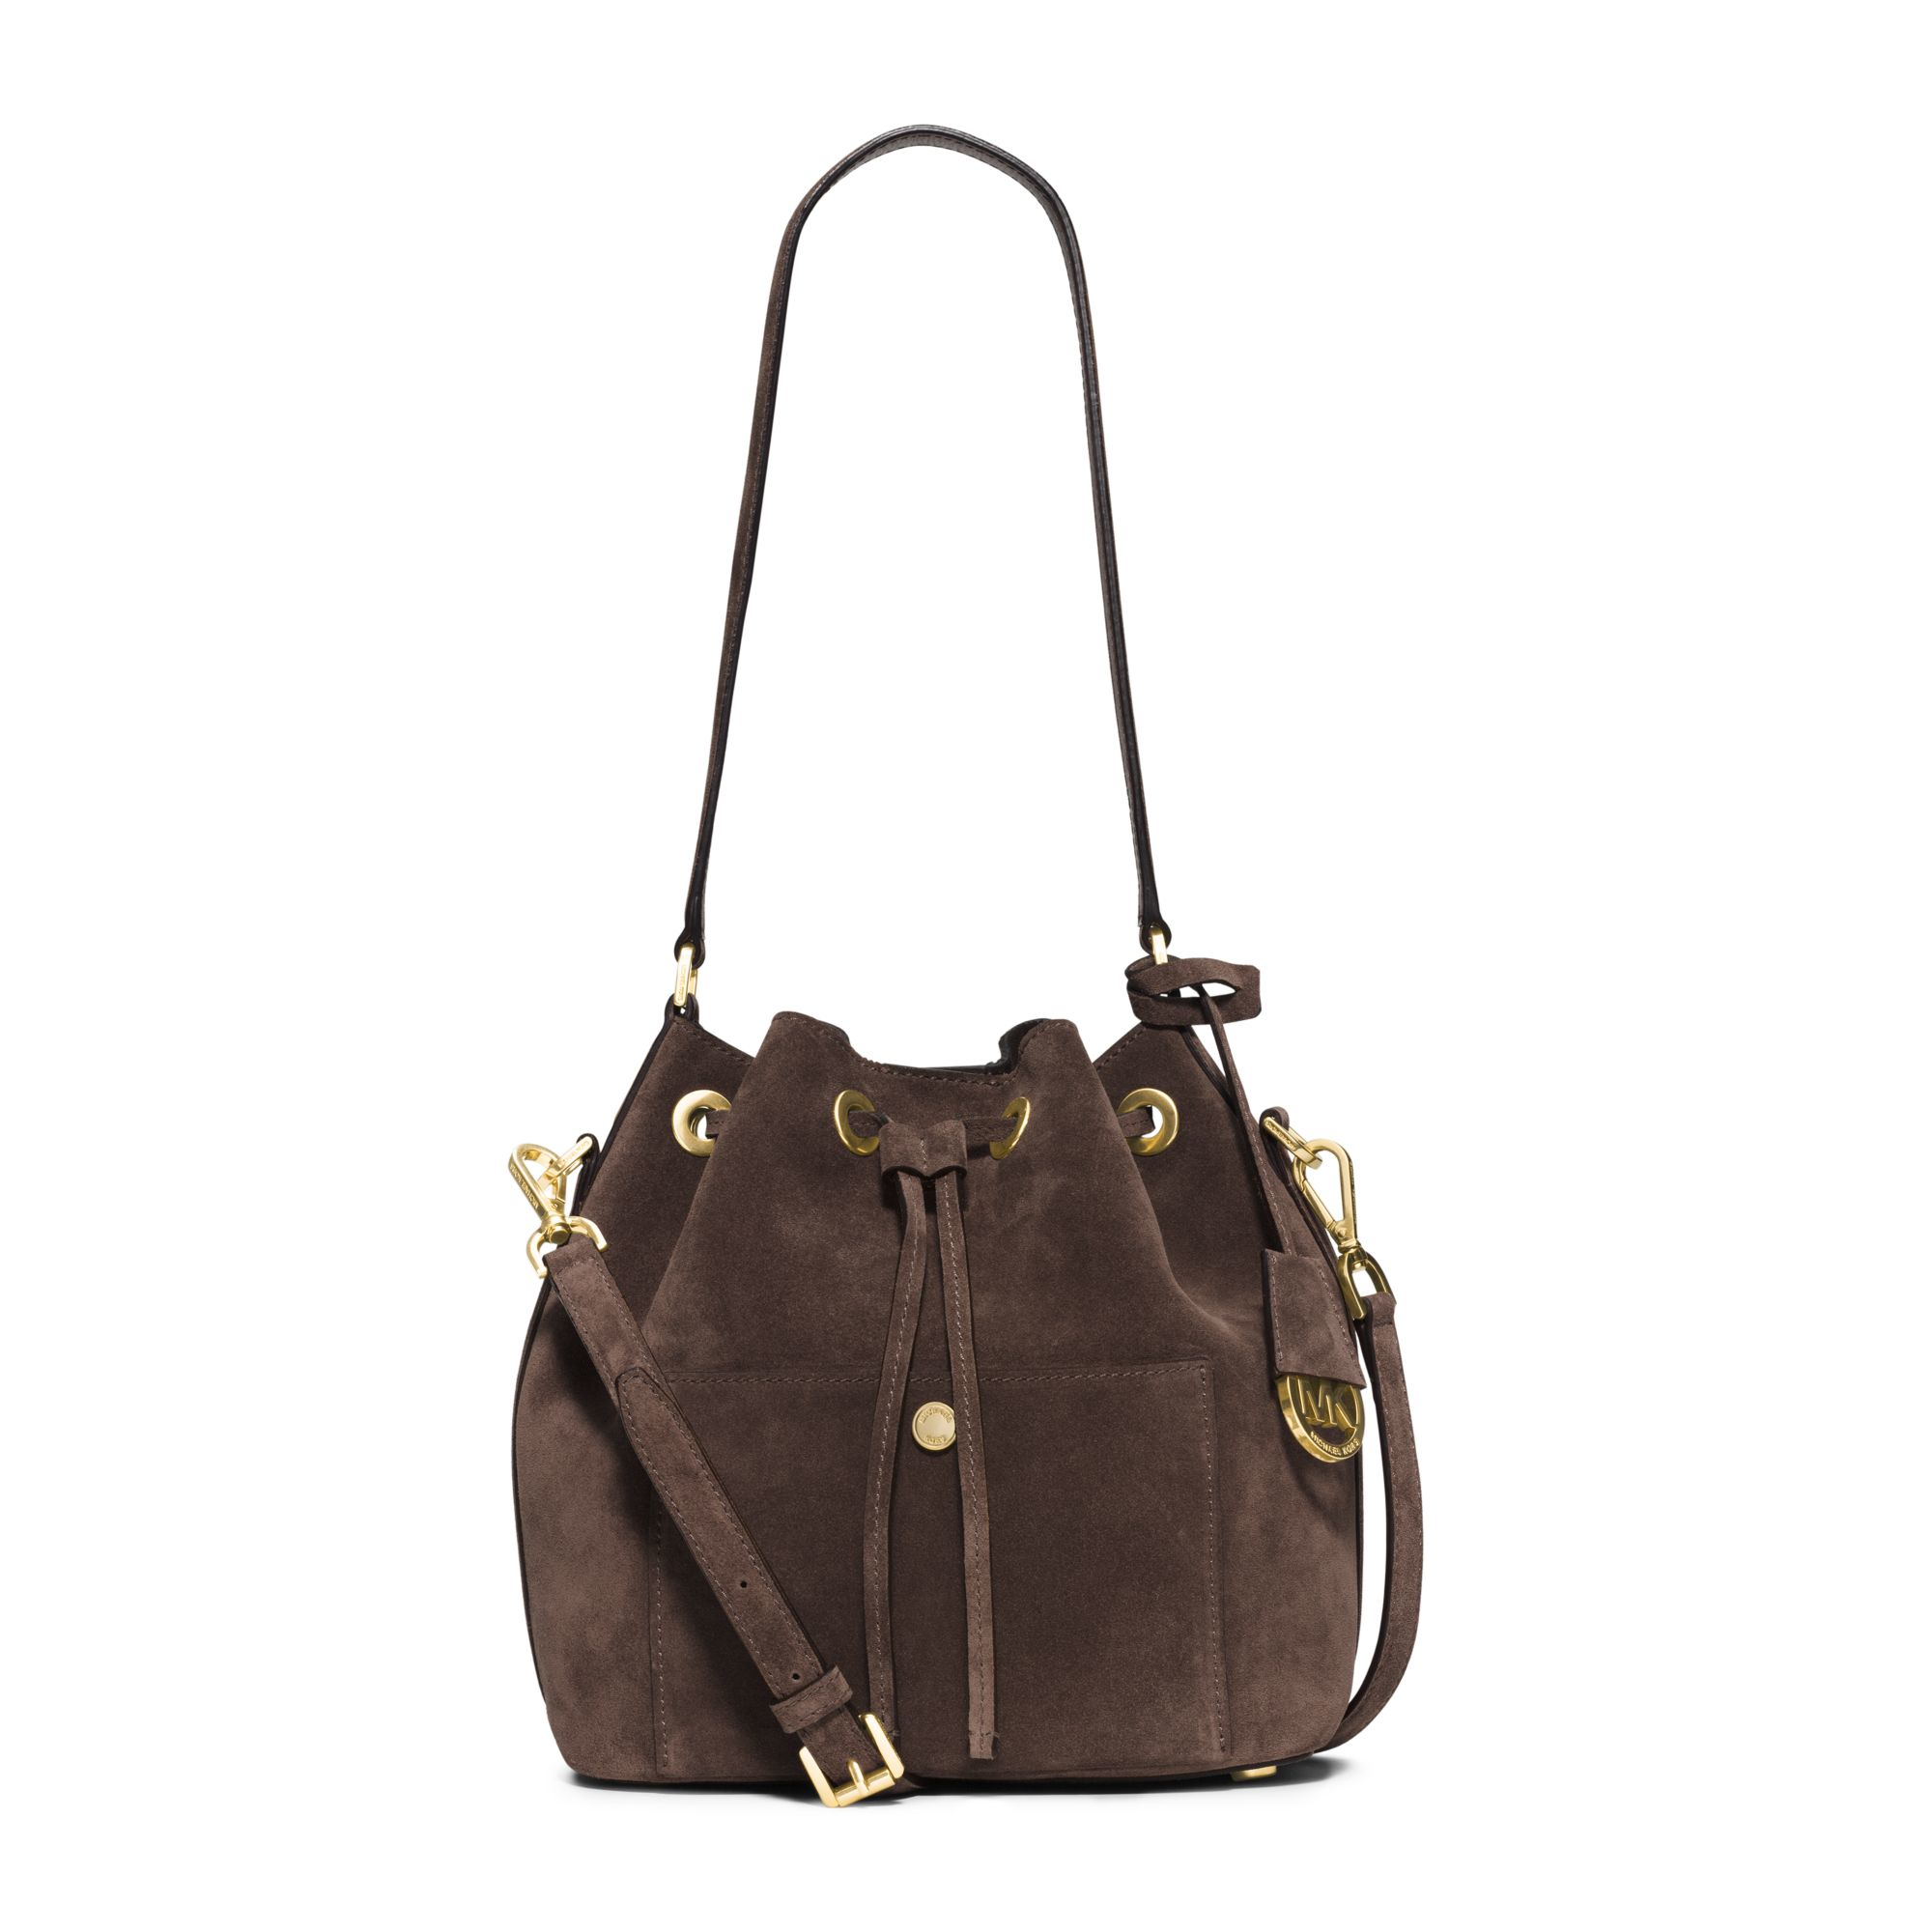 michael kors greenwich suede bucket bag in brown coffee. Black Bedroom Furniture Sets. Home Design Ideas